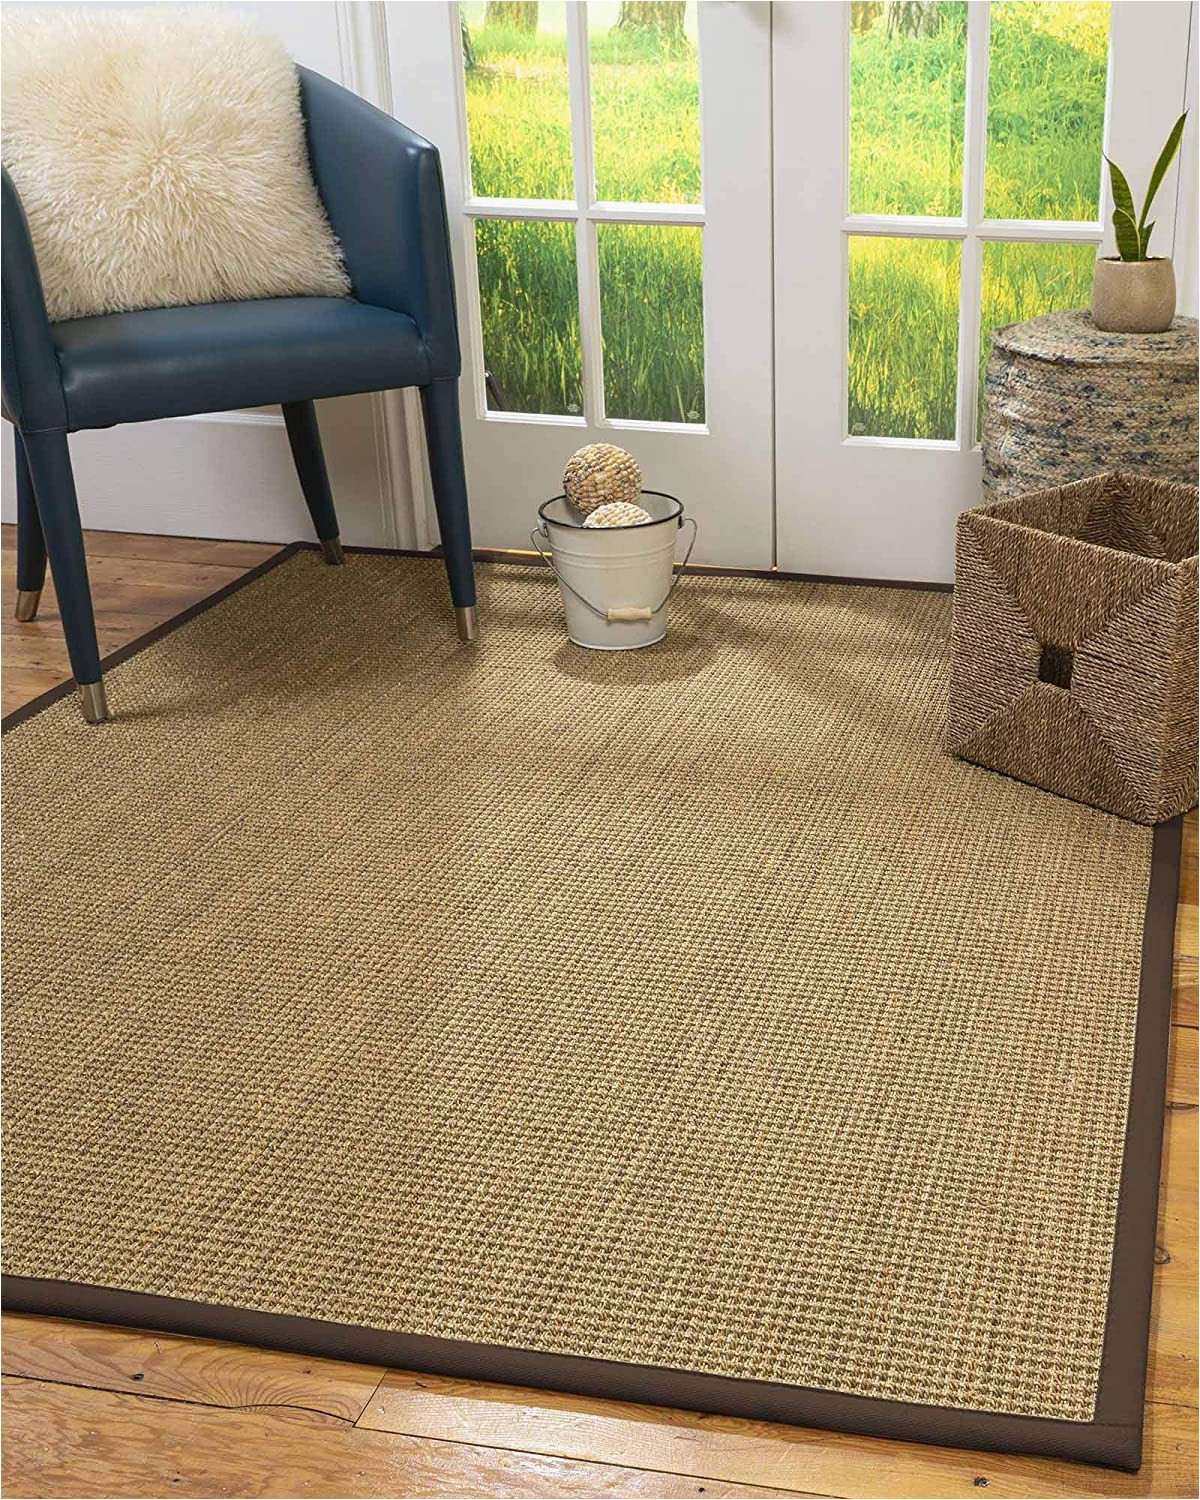 Extra Large area Rugs Amazon Amazon Natural area Rugs Hamptons Seagrass Rug Extra